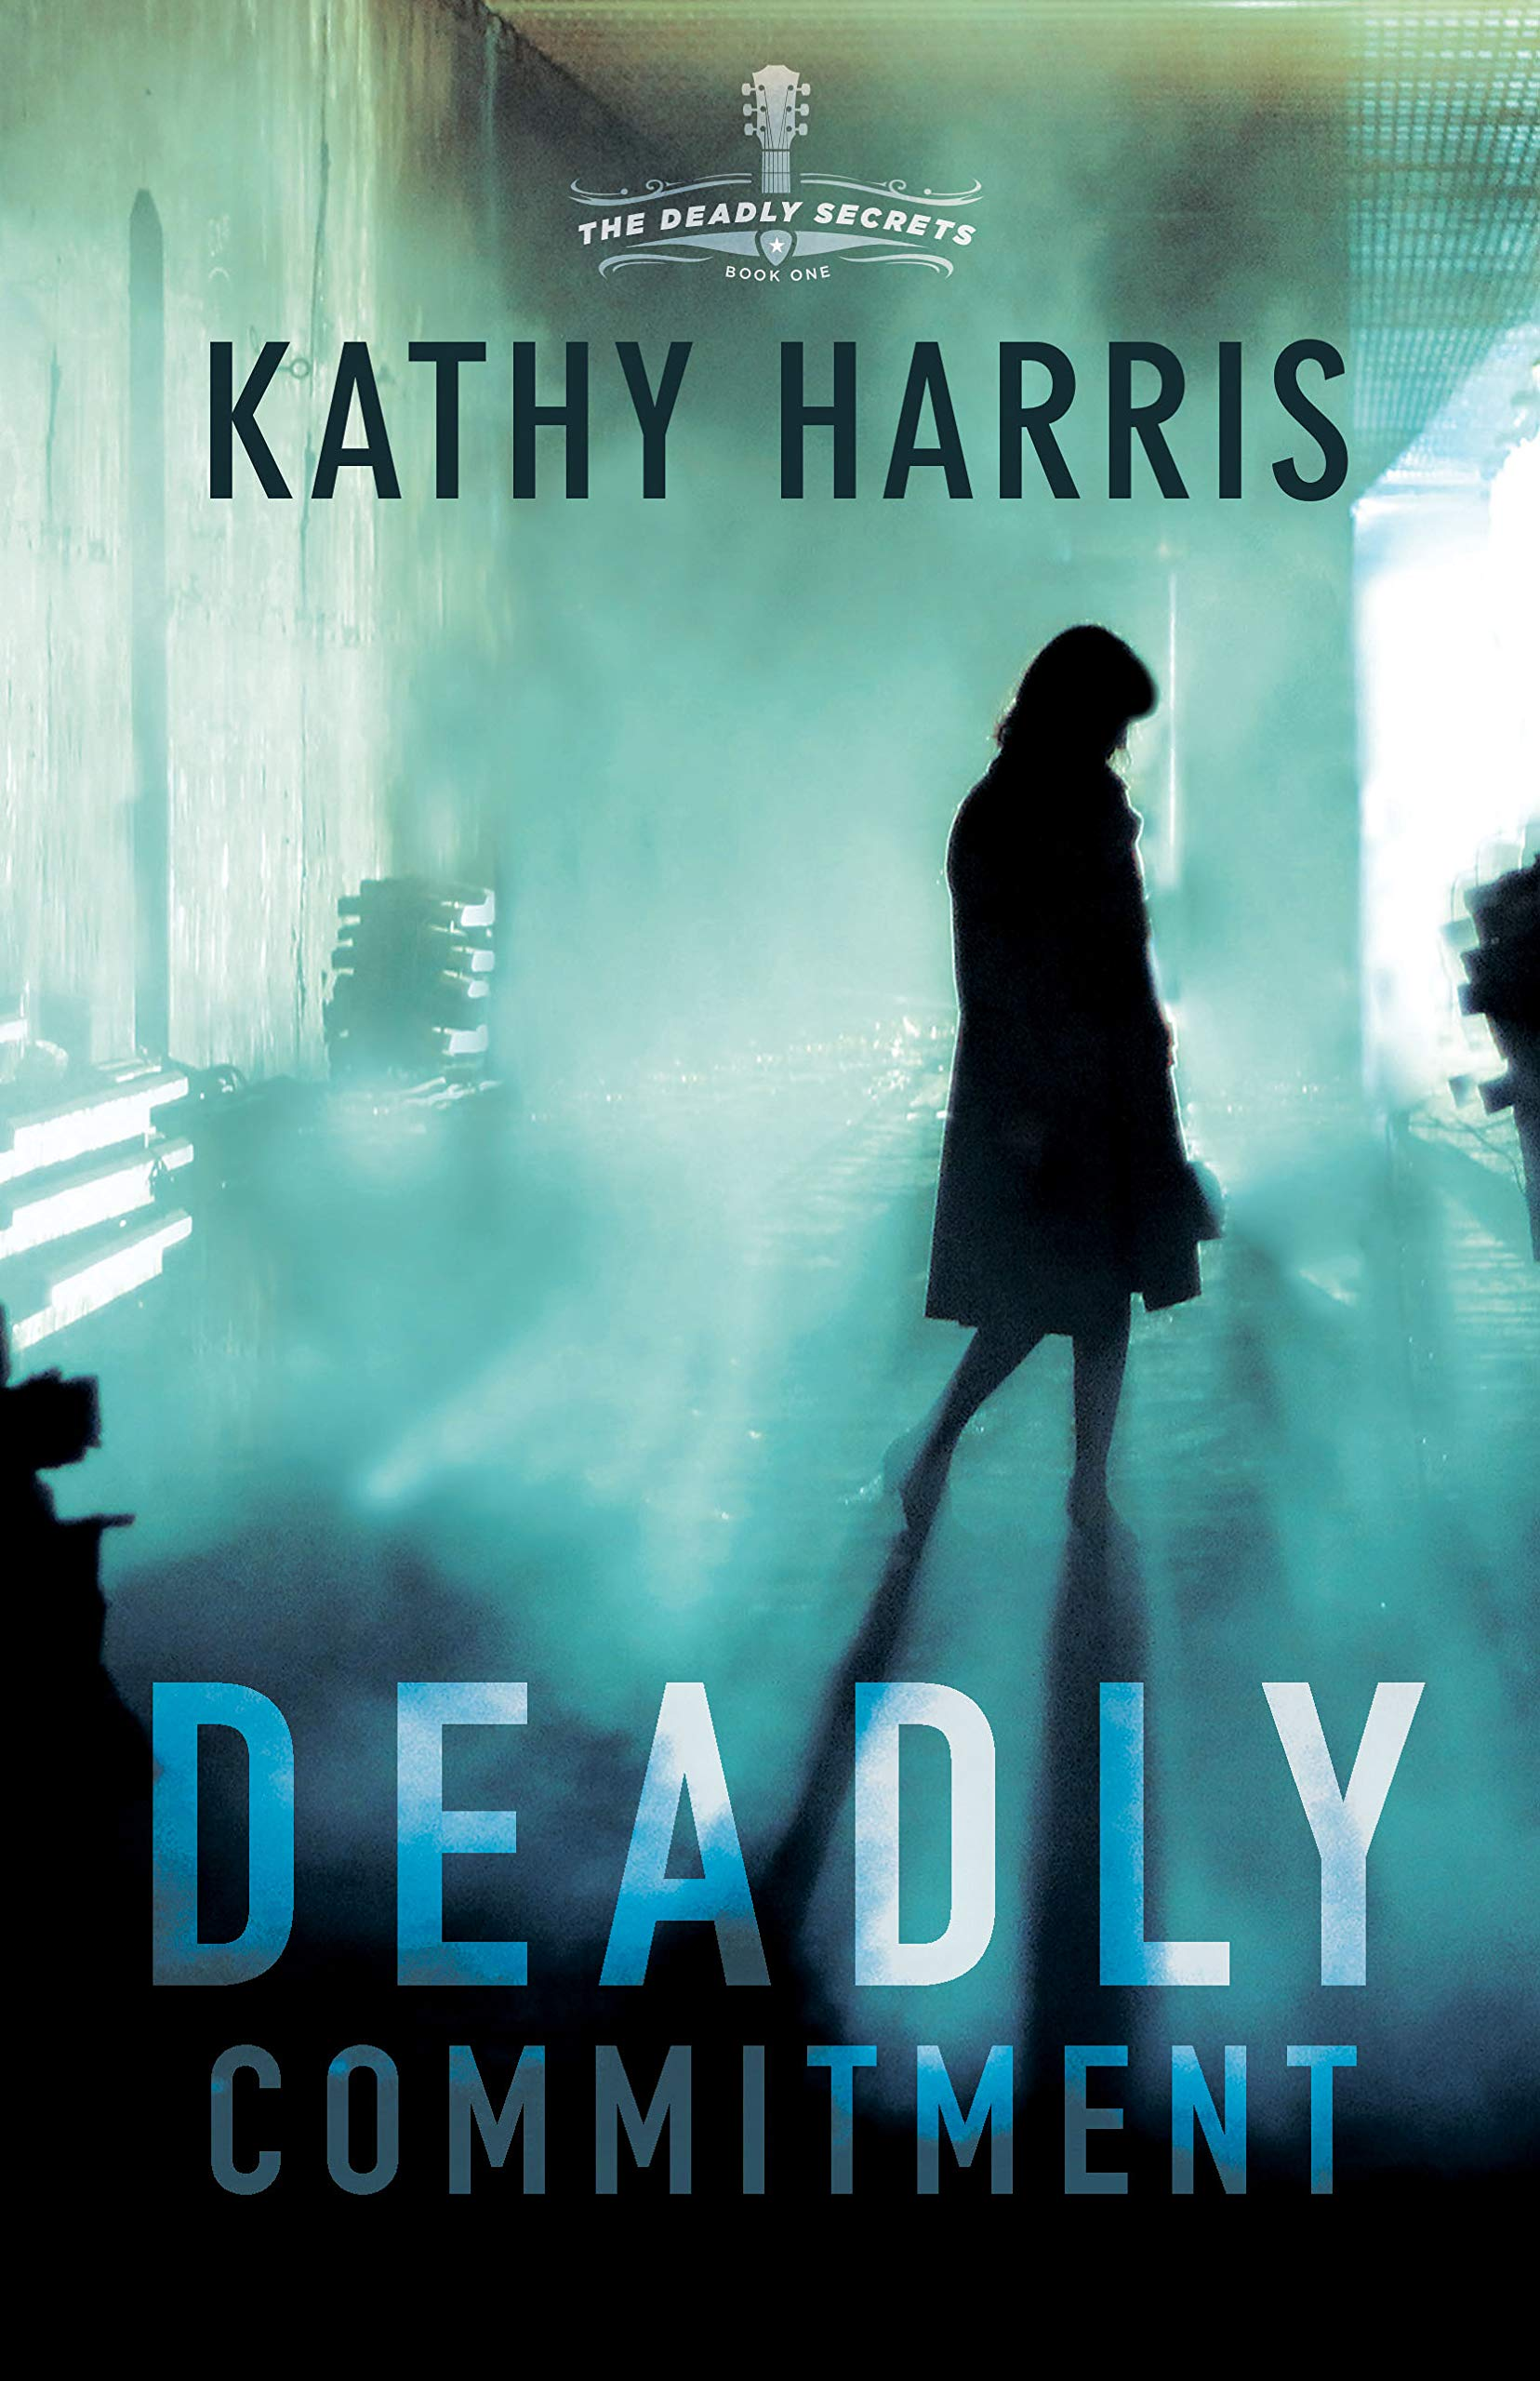 Deadly Commitment {A Book Review}